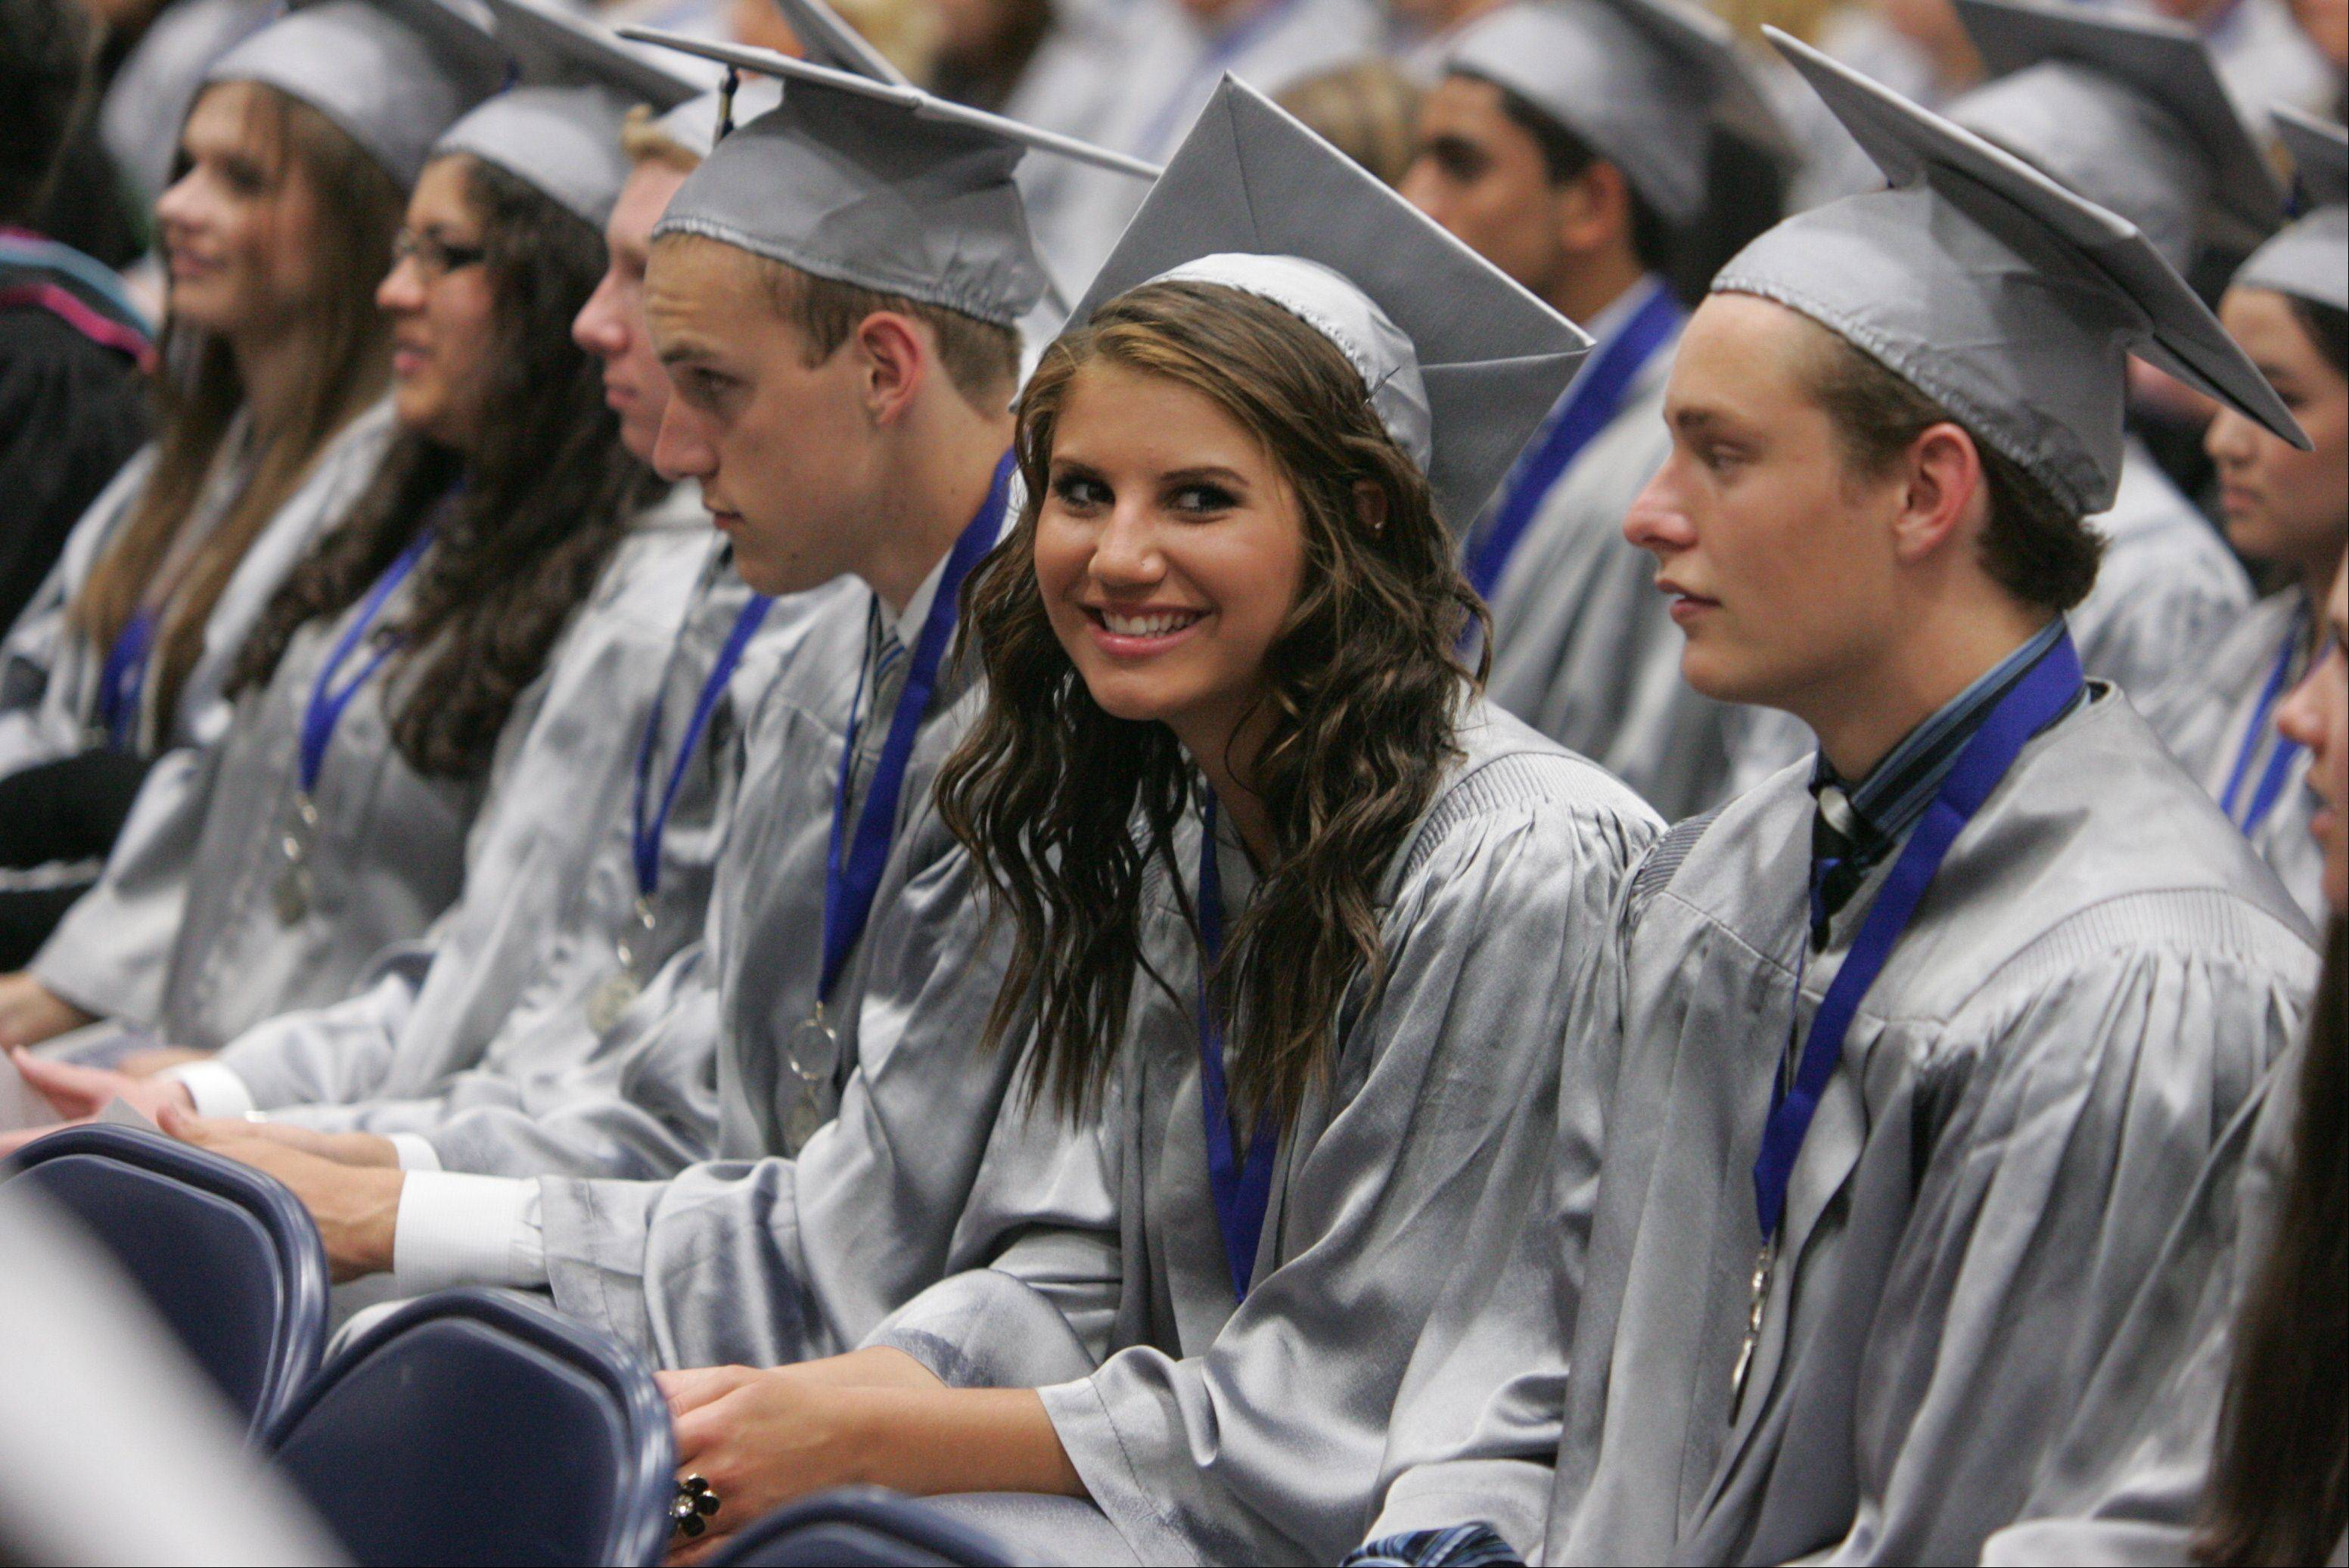 Images from the Vernon Hills High School graduation on Thursday, May 31 in Vernon Hills.